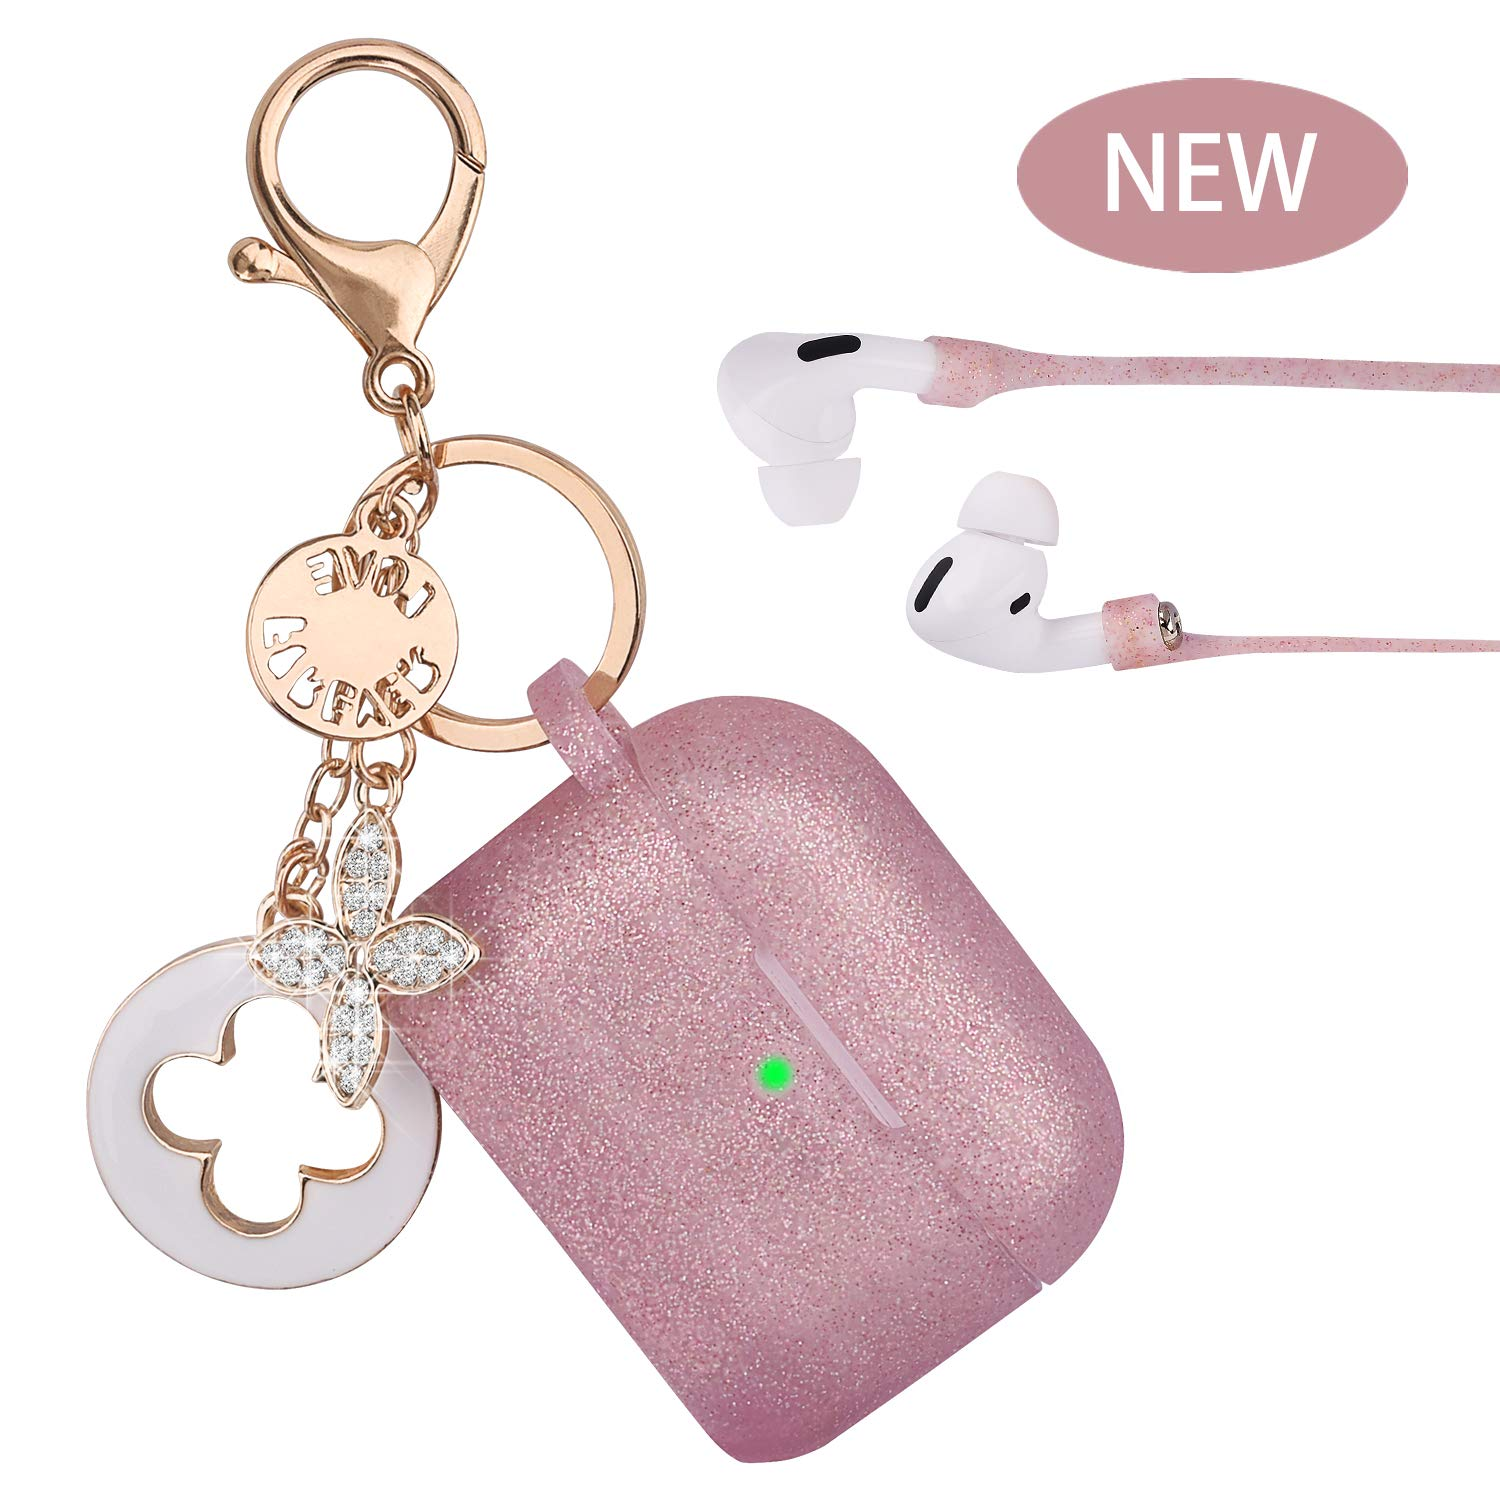 Airpods Pro Case - VIGOSS Airpods 3 Case Silicone for AirPods Pro Case Cover Women Protective Wireless Charging Case with Accessories Keychain/Strap Rose Gold